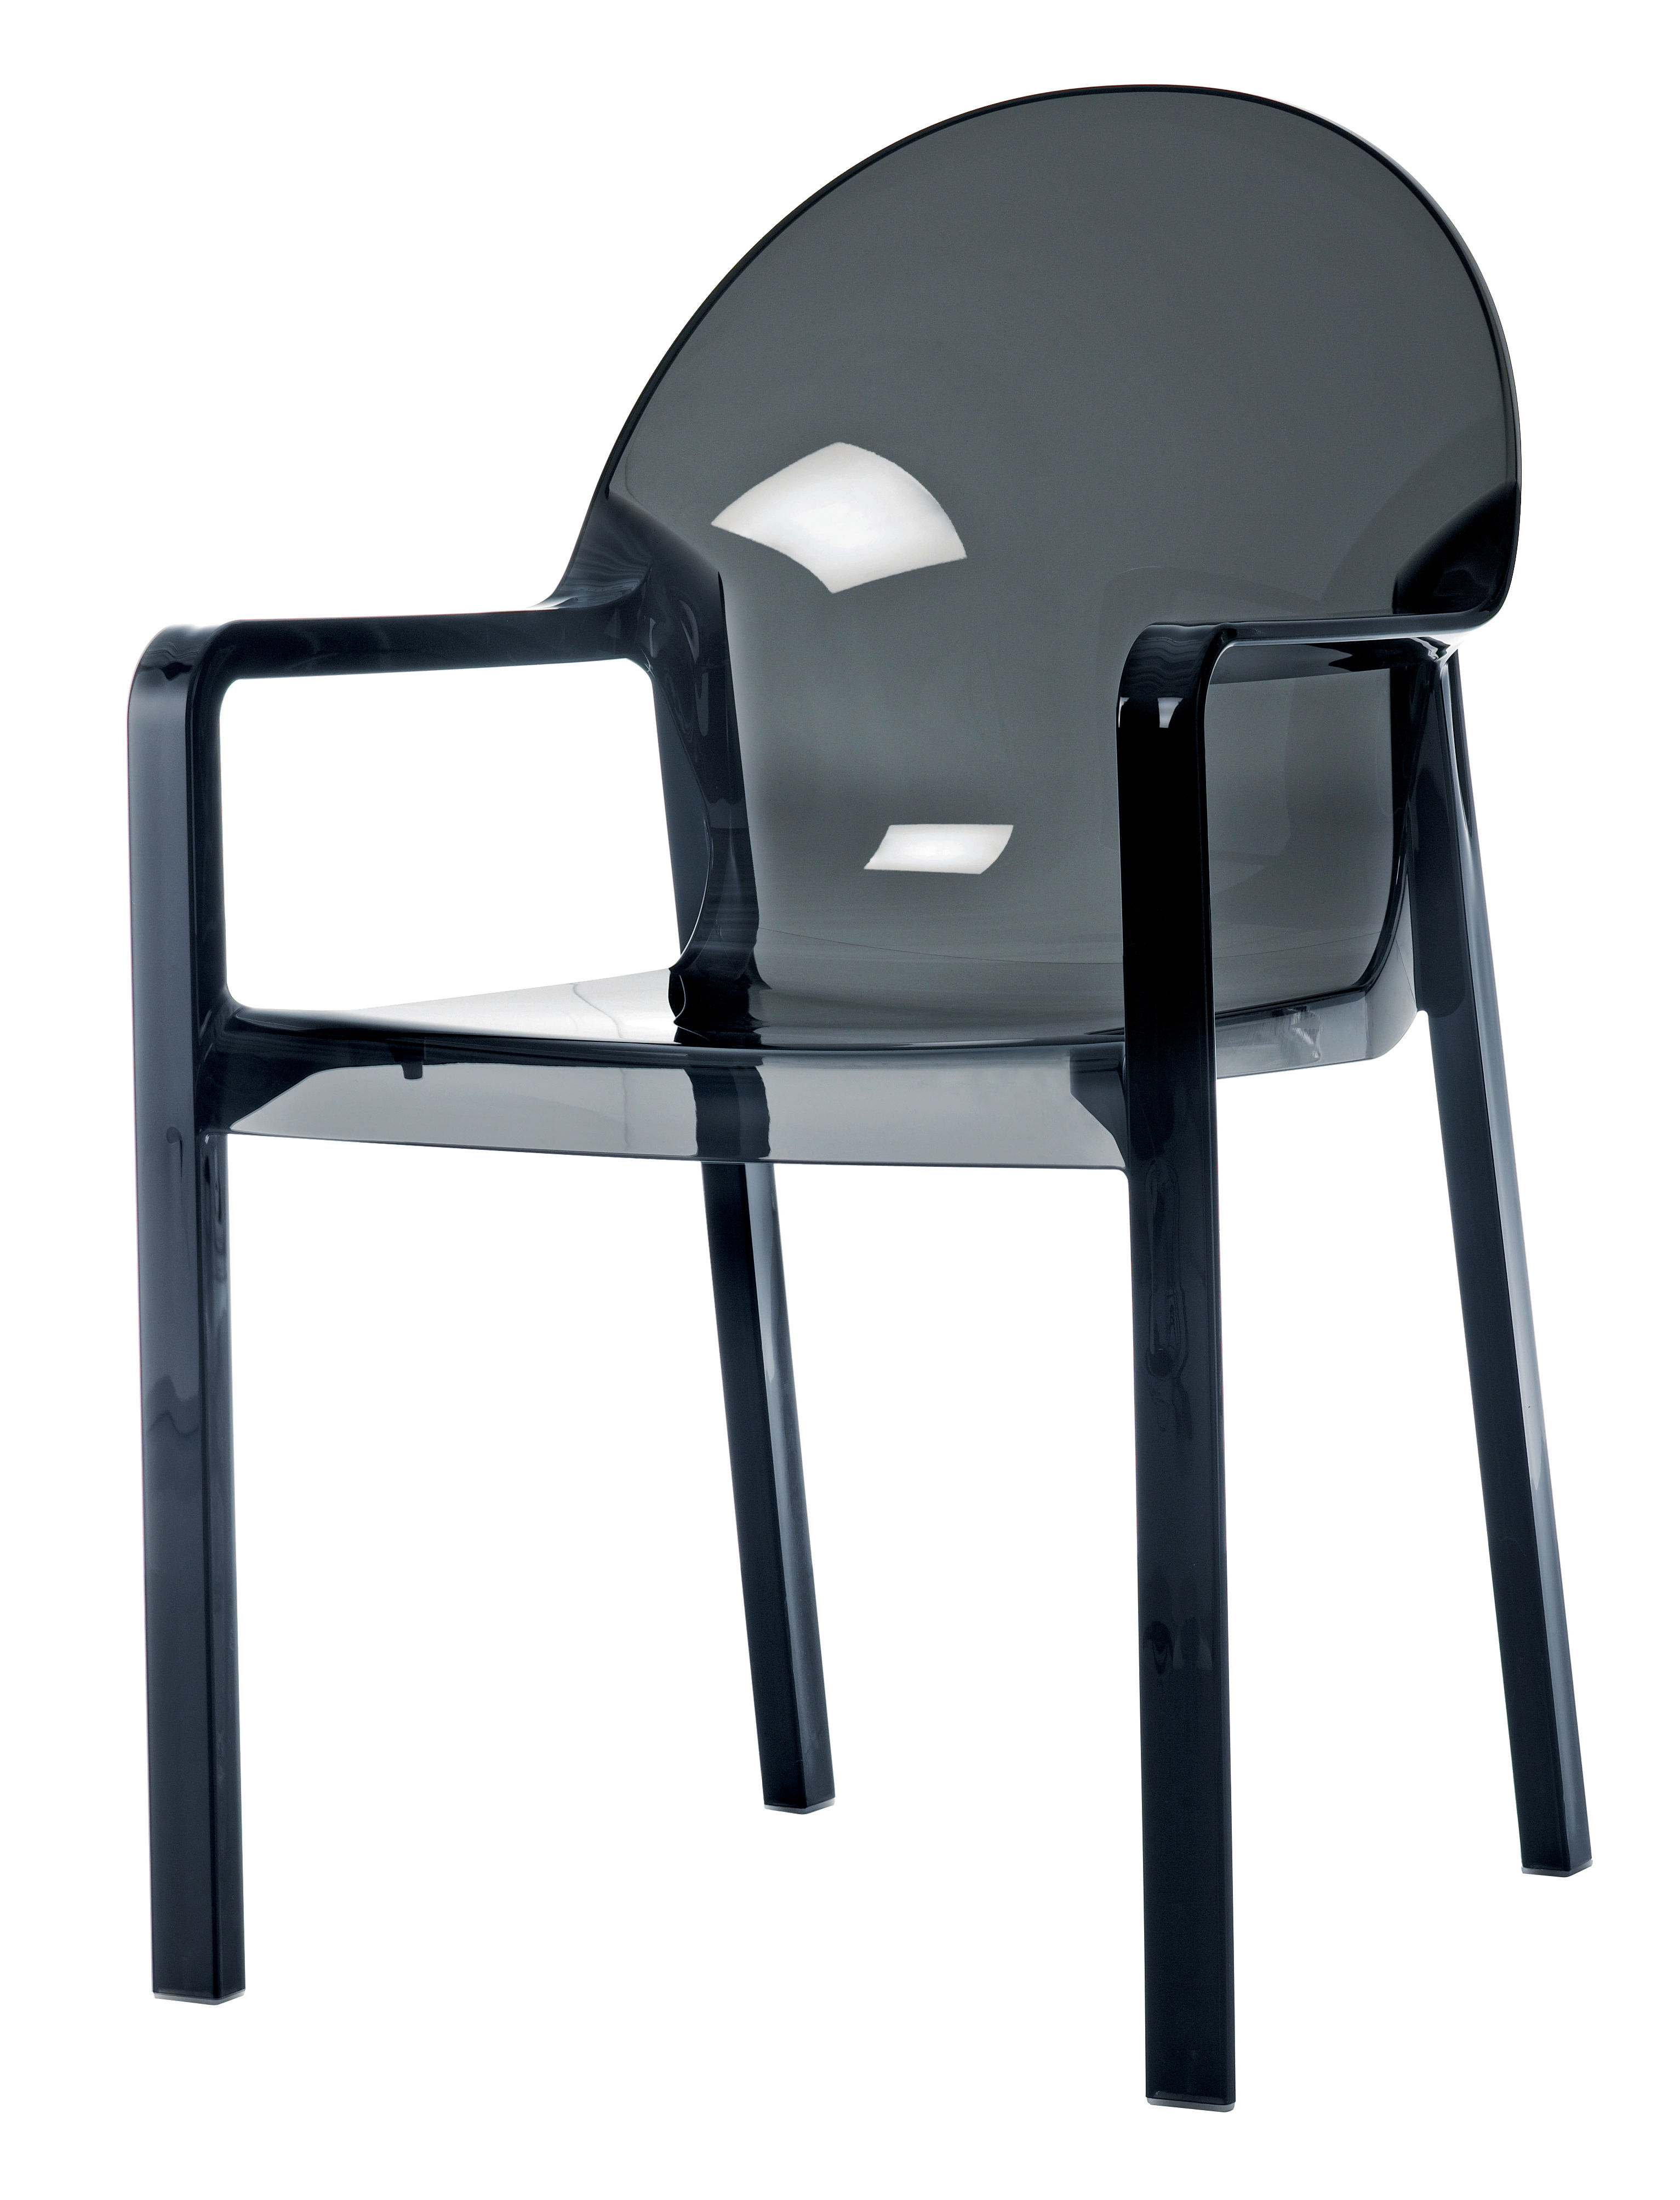 Furniture - Chairs - Tosca Stackable armchair - Plastic by Magis - Smoke - Polycarbonate